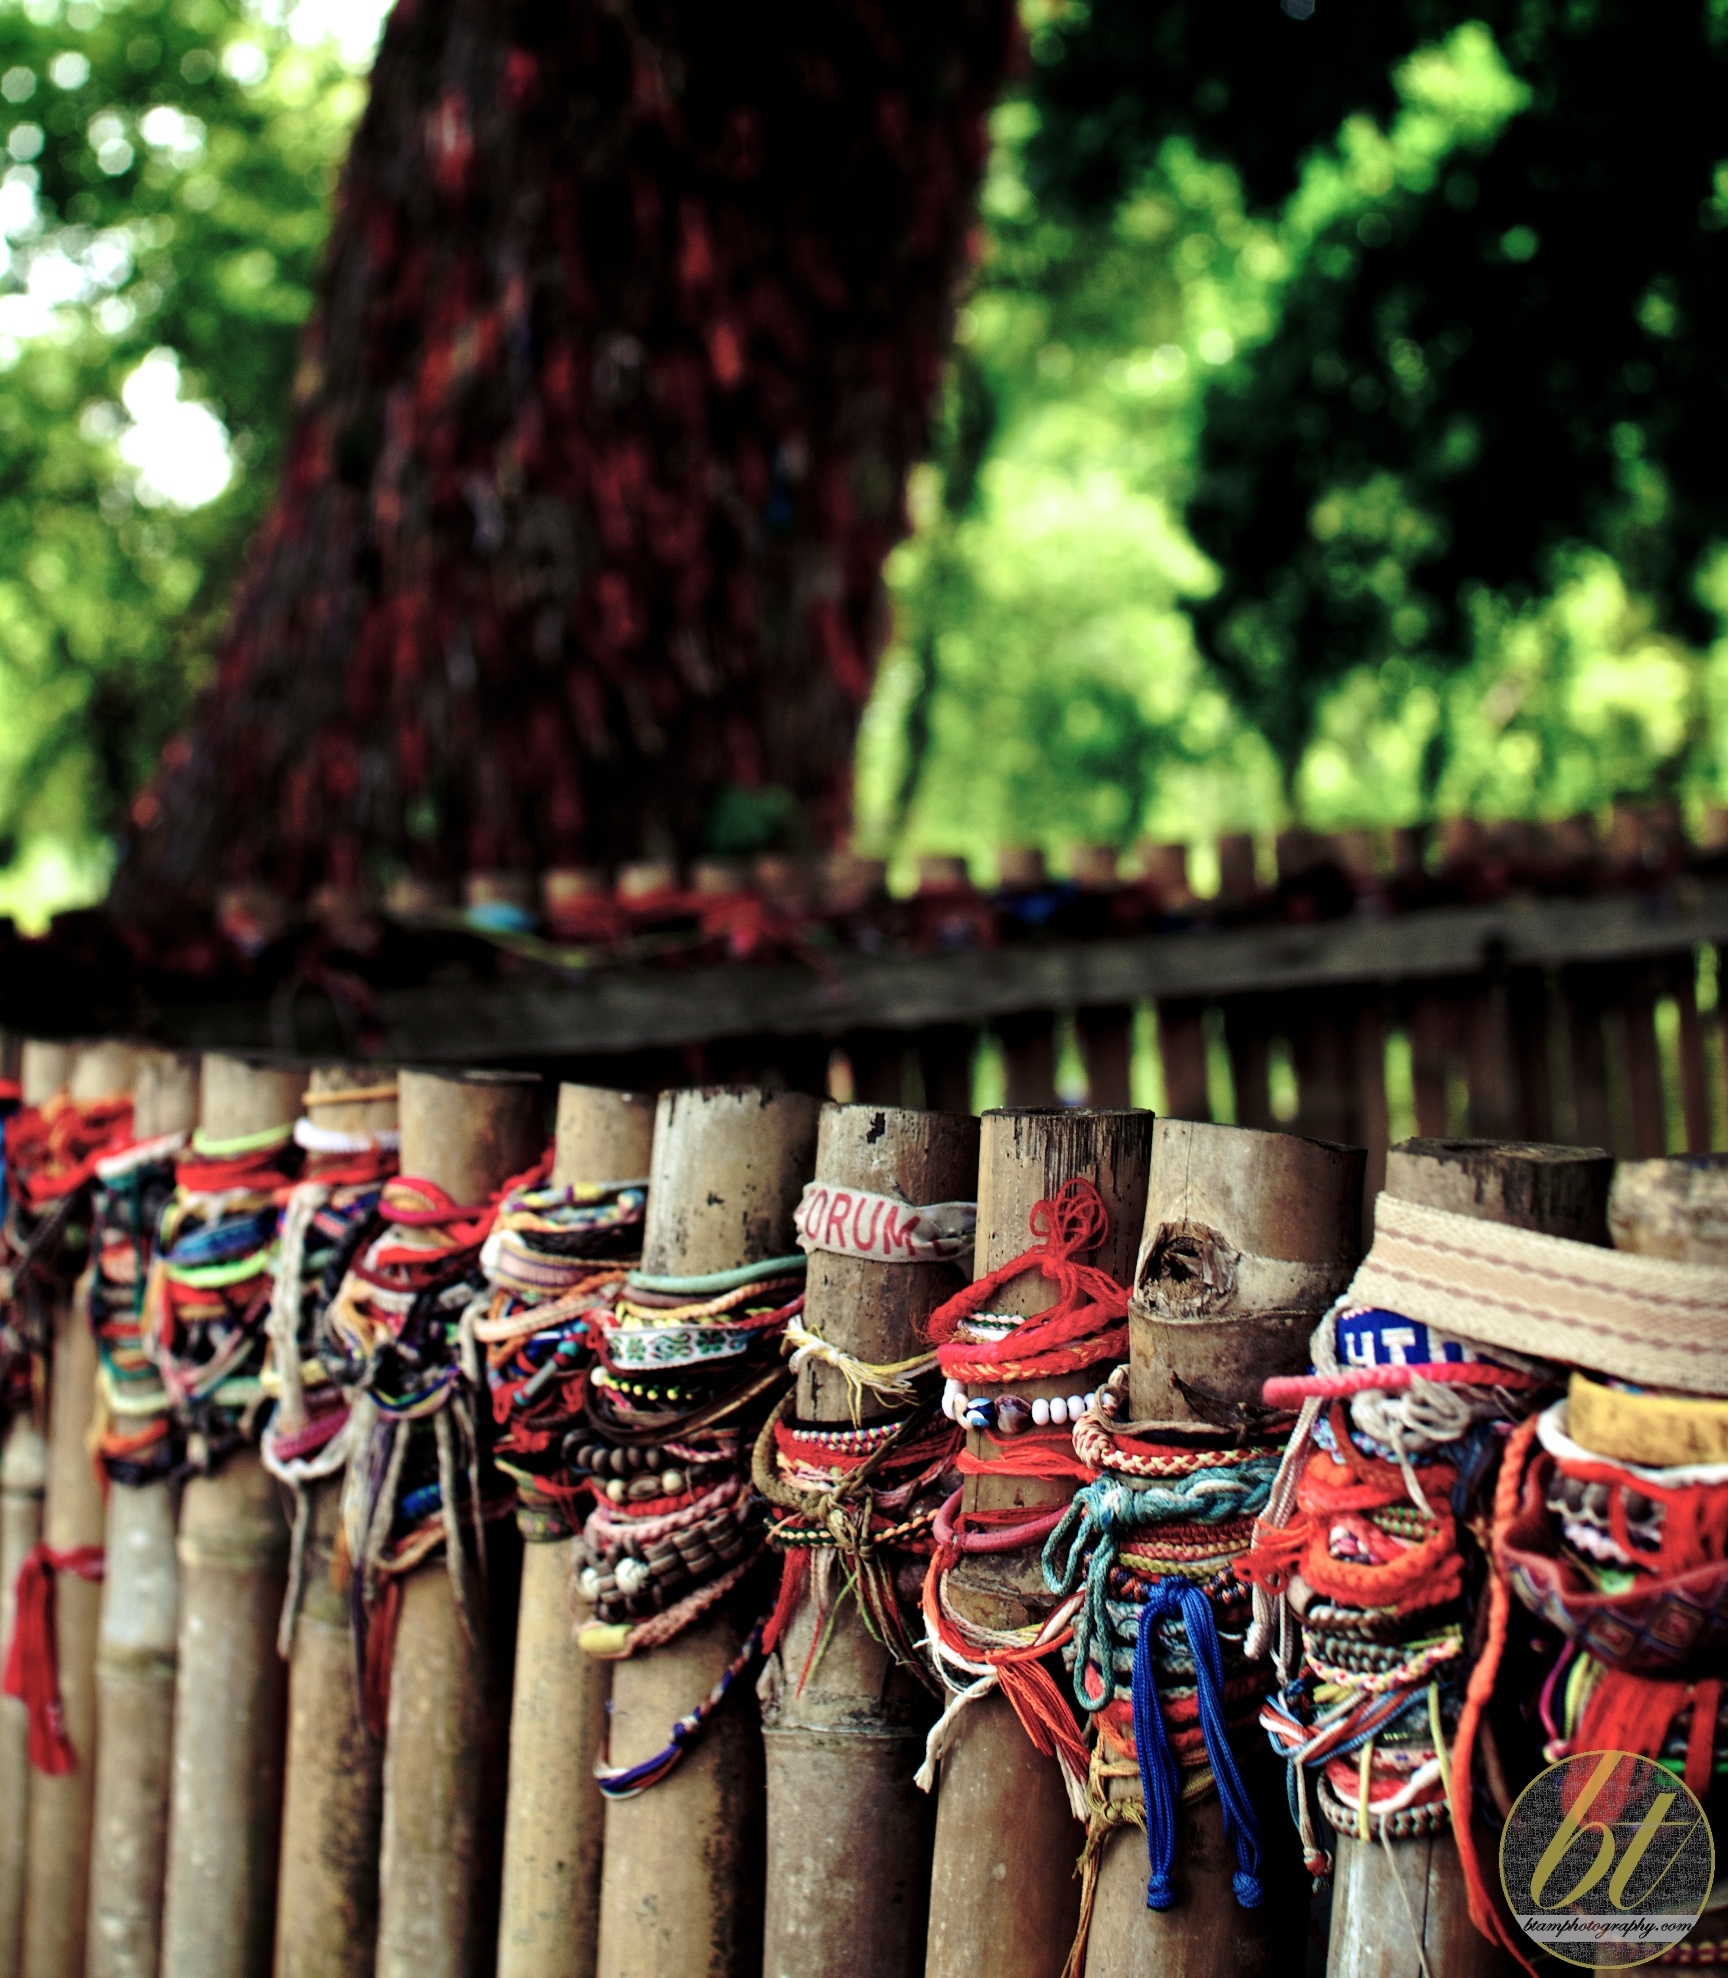 choeung ek killing fields - bracelets surrounding a mass grave of women and children, executioner's tree in background